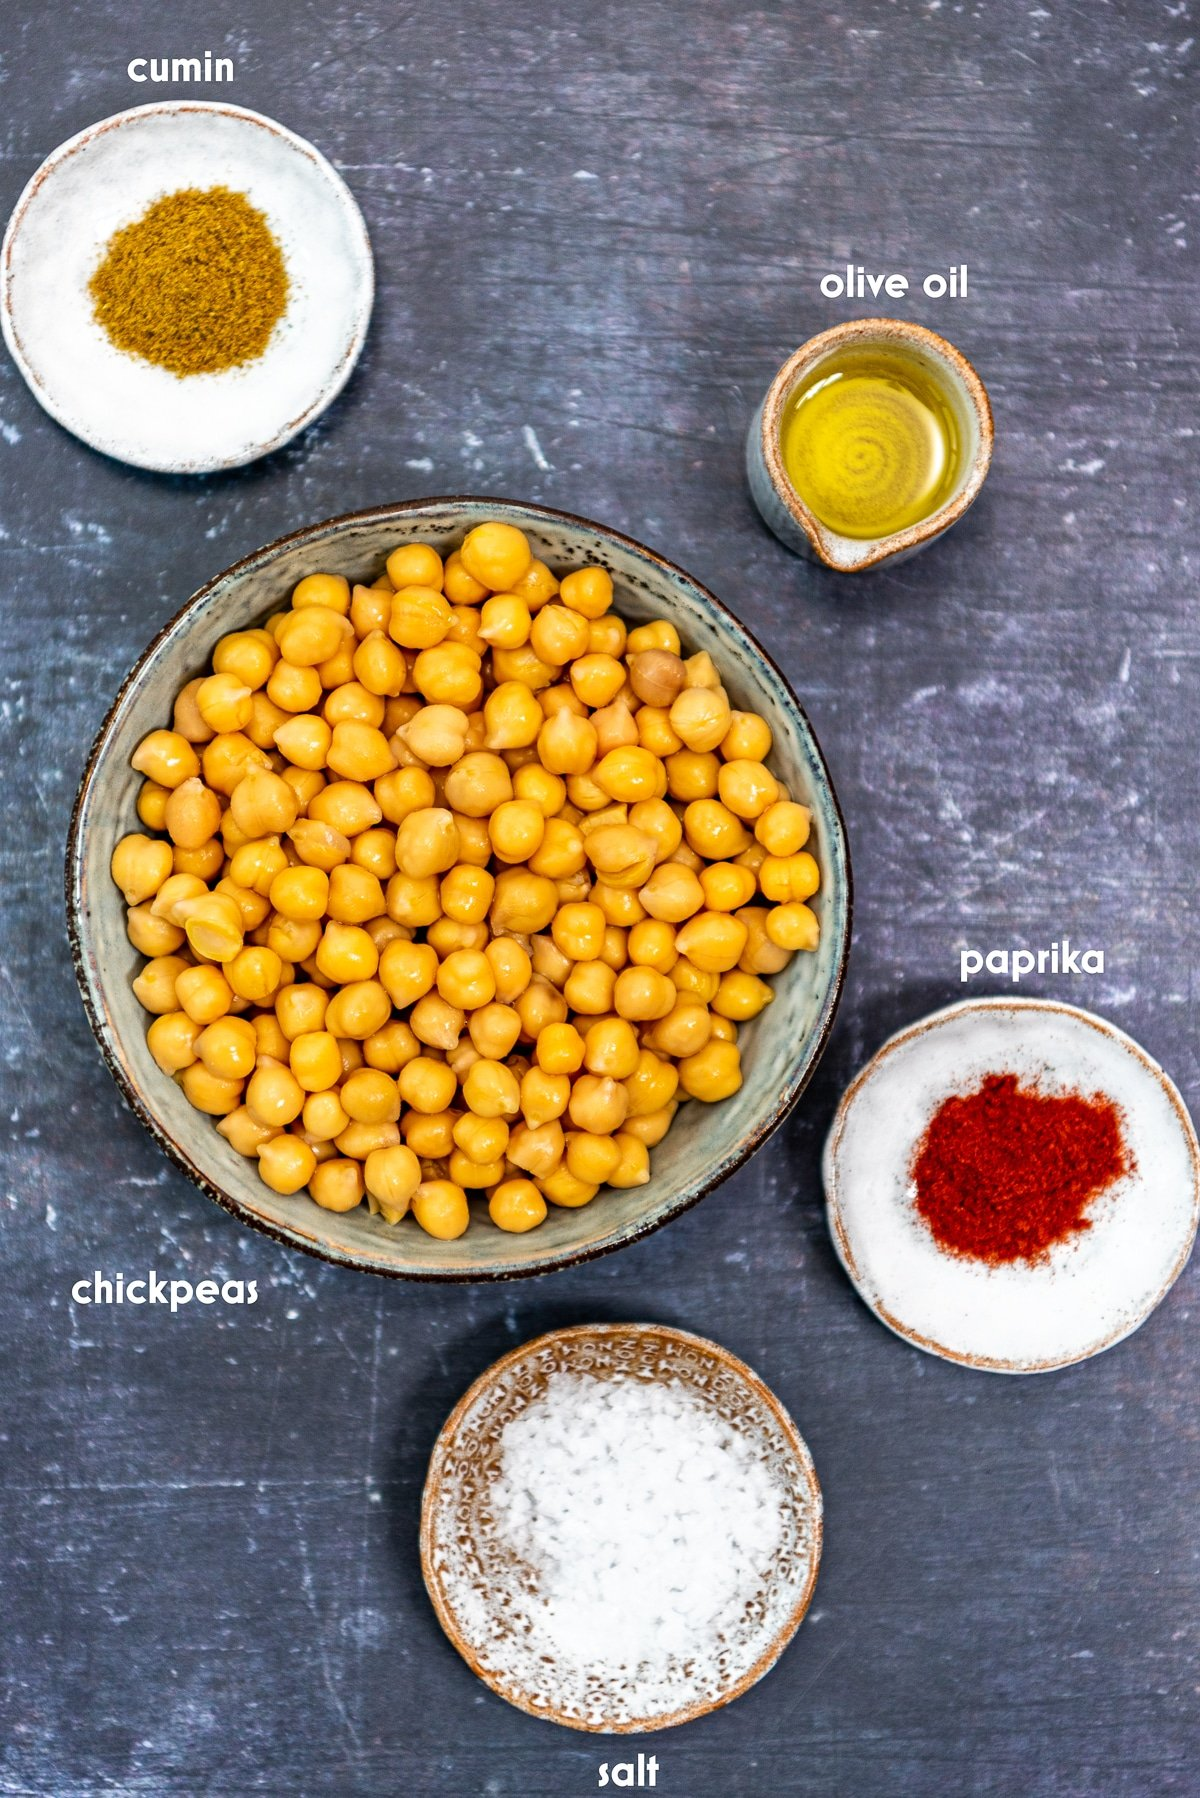 Cooked chickpeas, salt, paprika, cumin, salt and olive oil in separate bowls on a dark background.